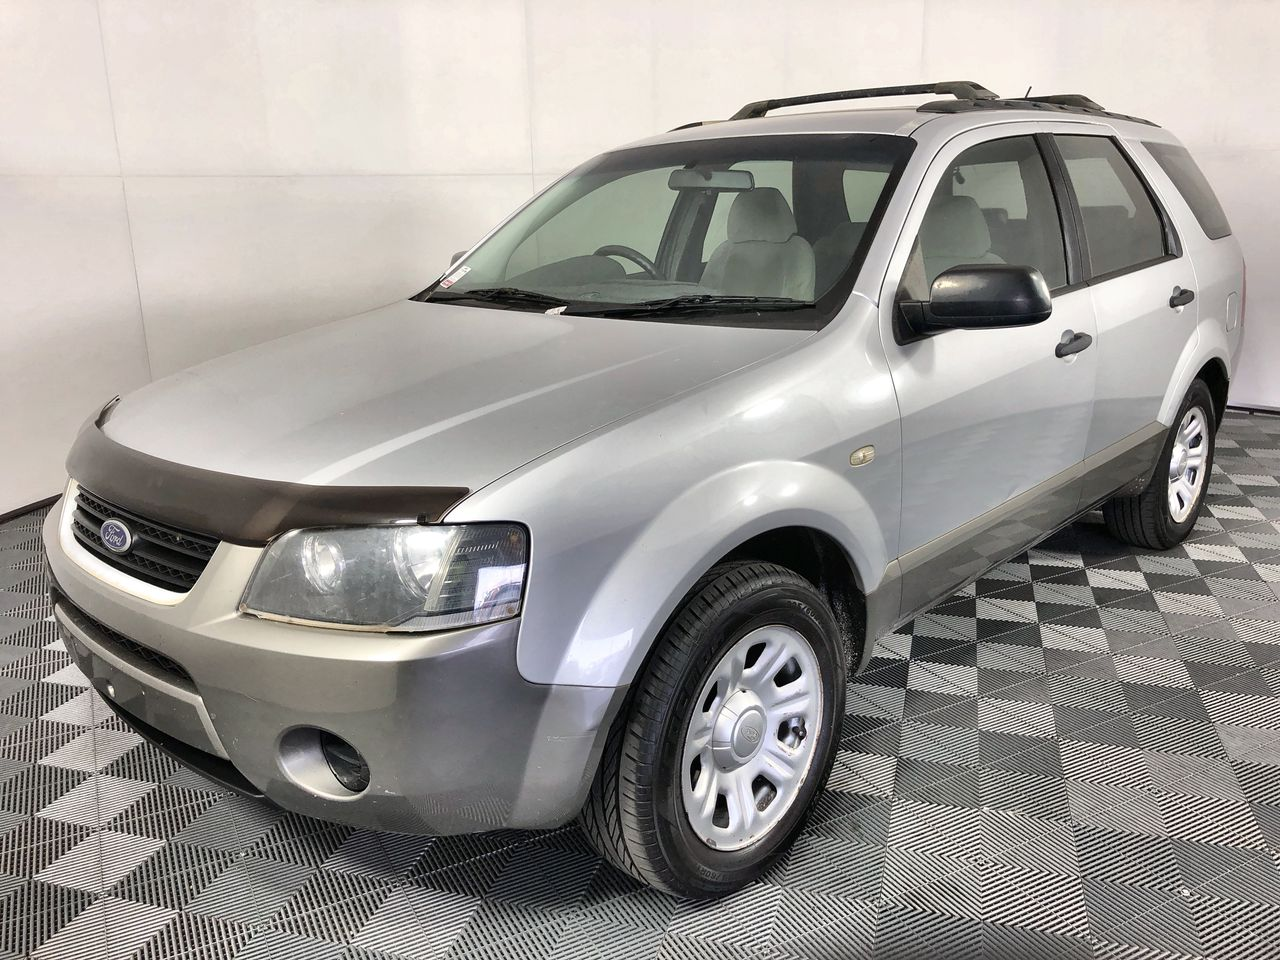 2007 Ford Territory TX SY Automatic 7 Seats Wagon